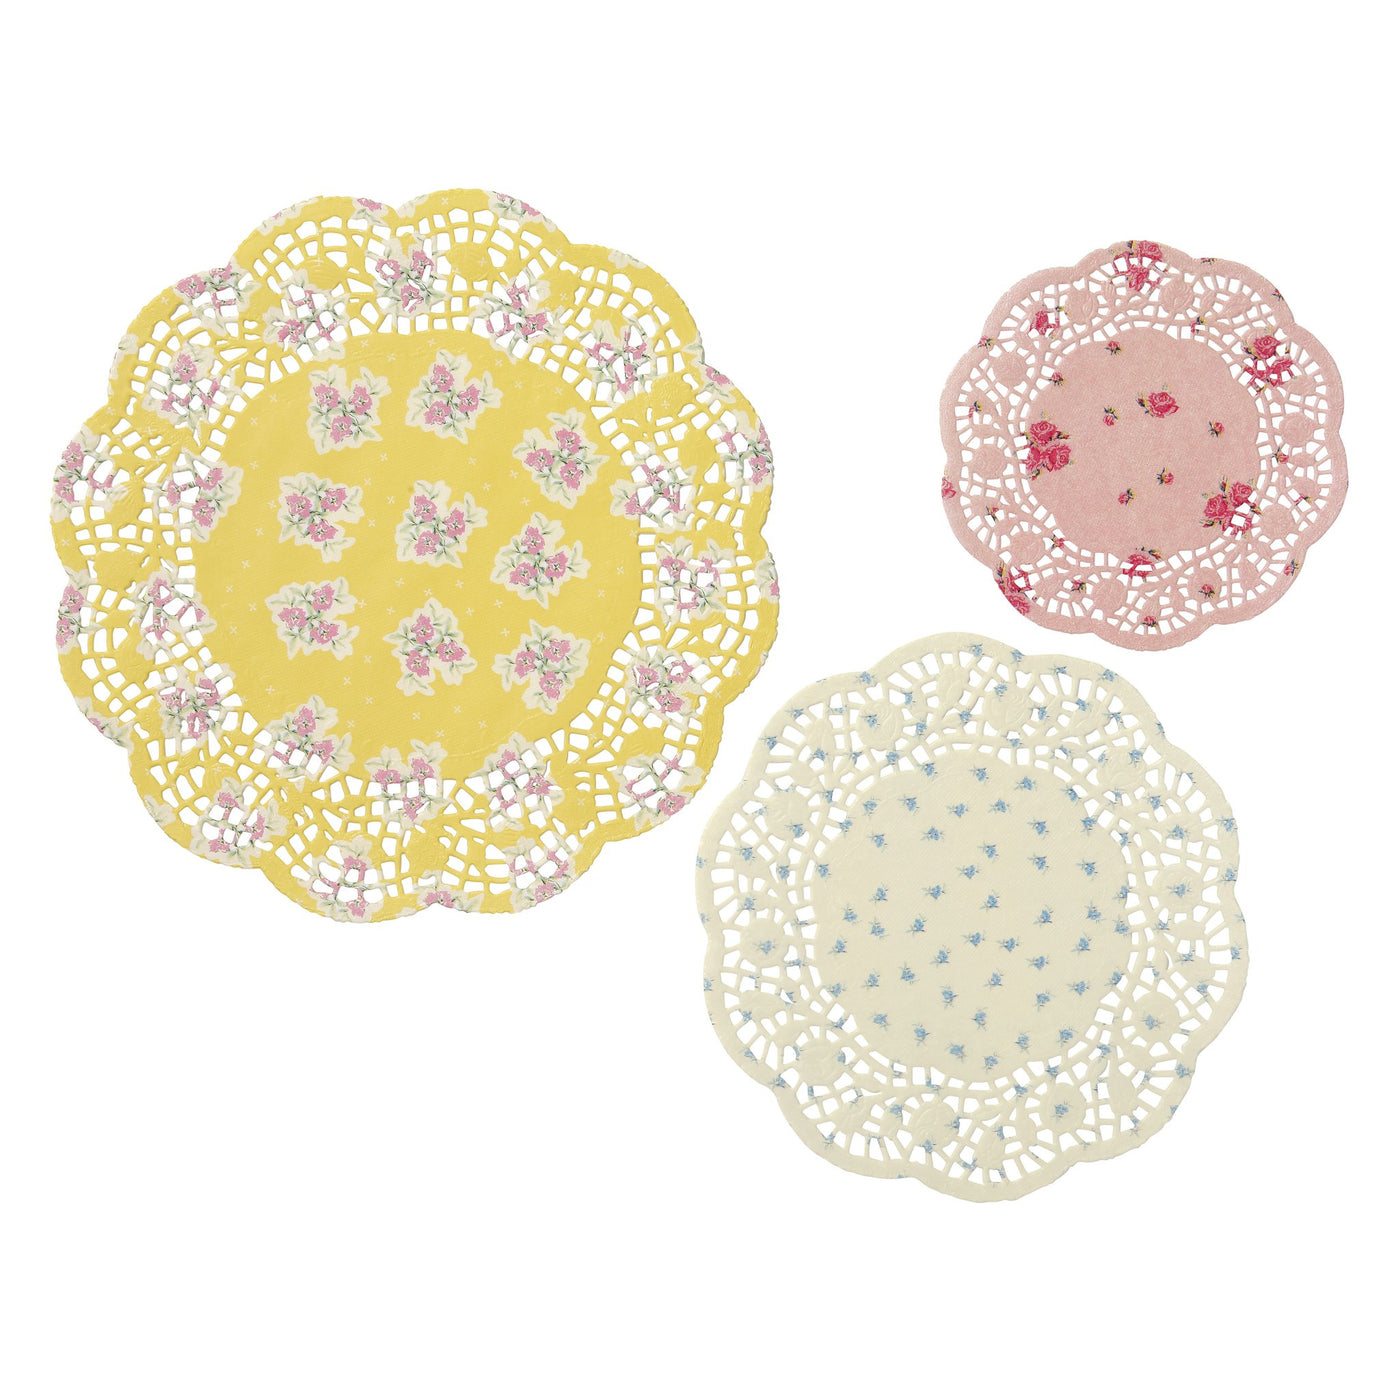 Truly Scrumptious Doilies